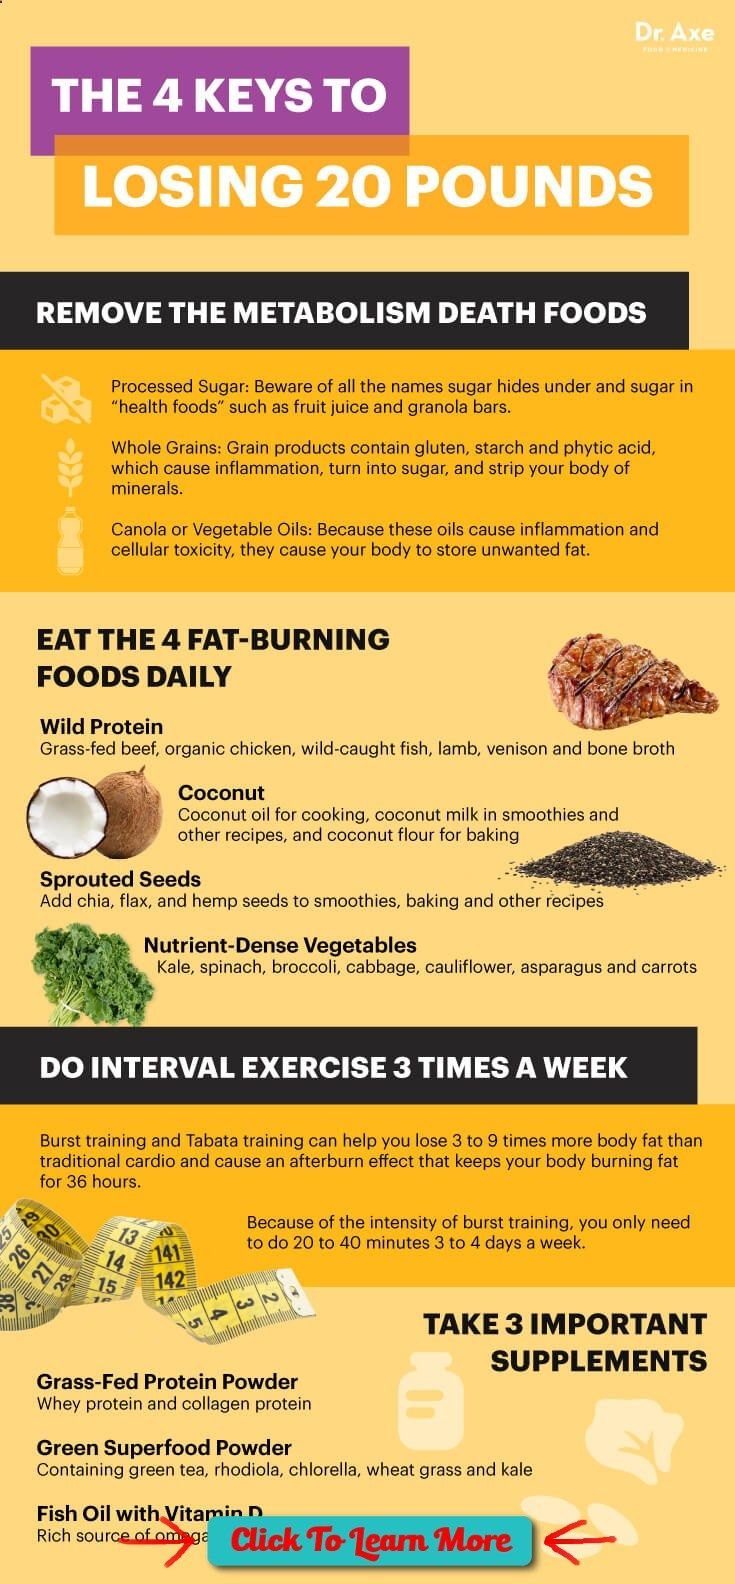 #FastestWayToLoseWeight by EATING, Click to learn more, How to Lose 20 Lbs with Diet and Supplements - Dr. Axe More , #HealthyRecipes, #FitnessRecipes, #BurnFatRecipes, #WeightLossRecipes, #WeightLossDiets